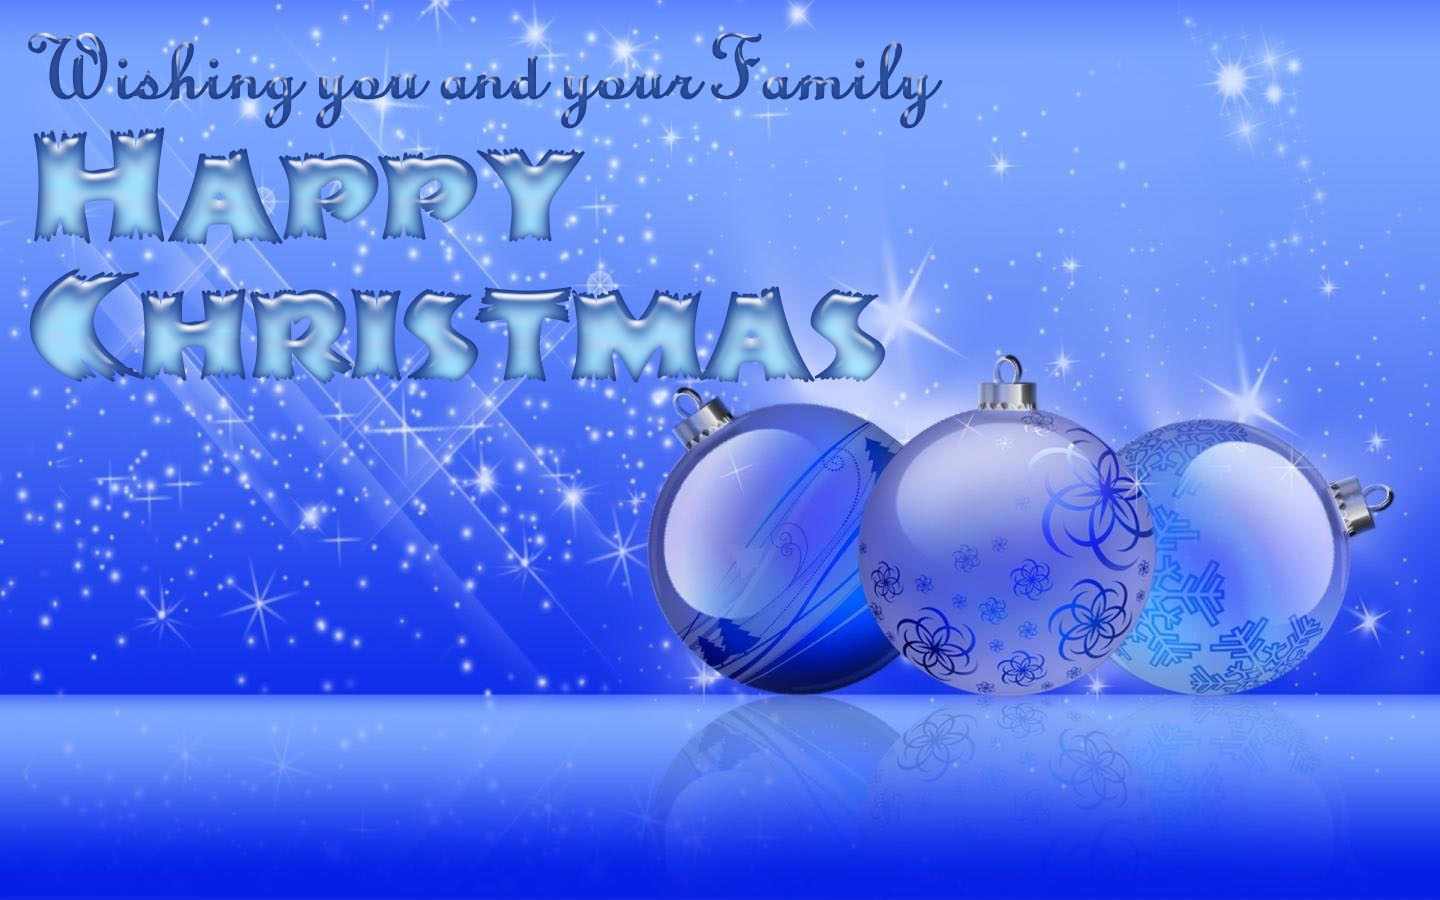 Family Christmas Greetings e Cards Online Christmas Greetings Xmas 004